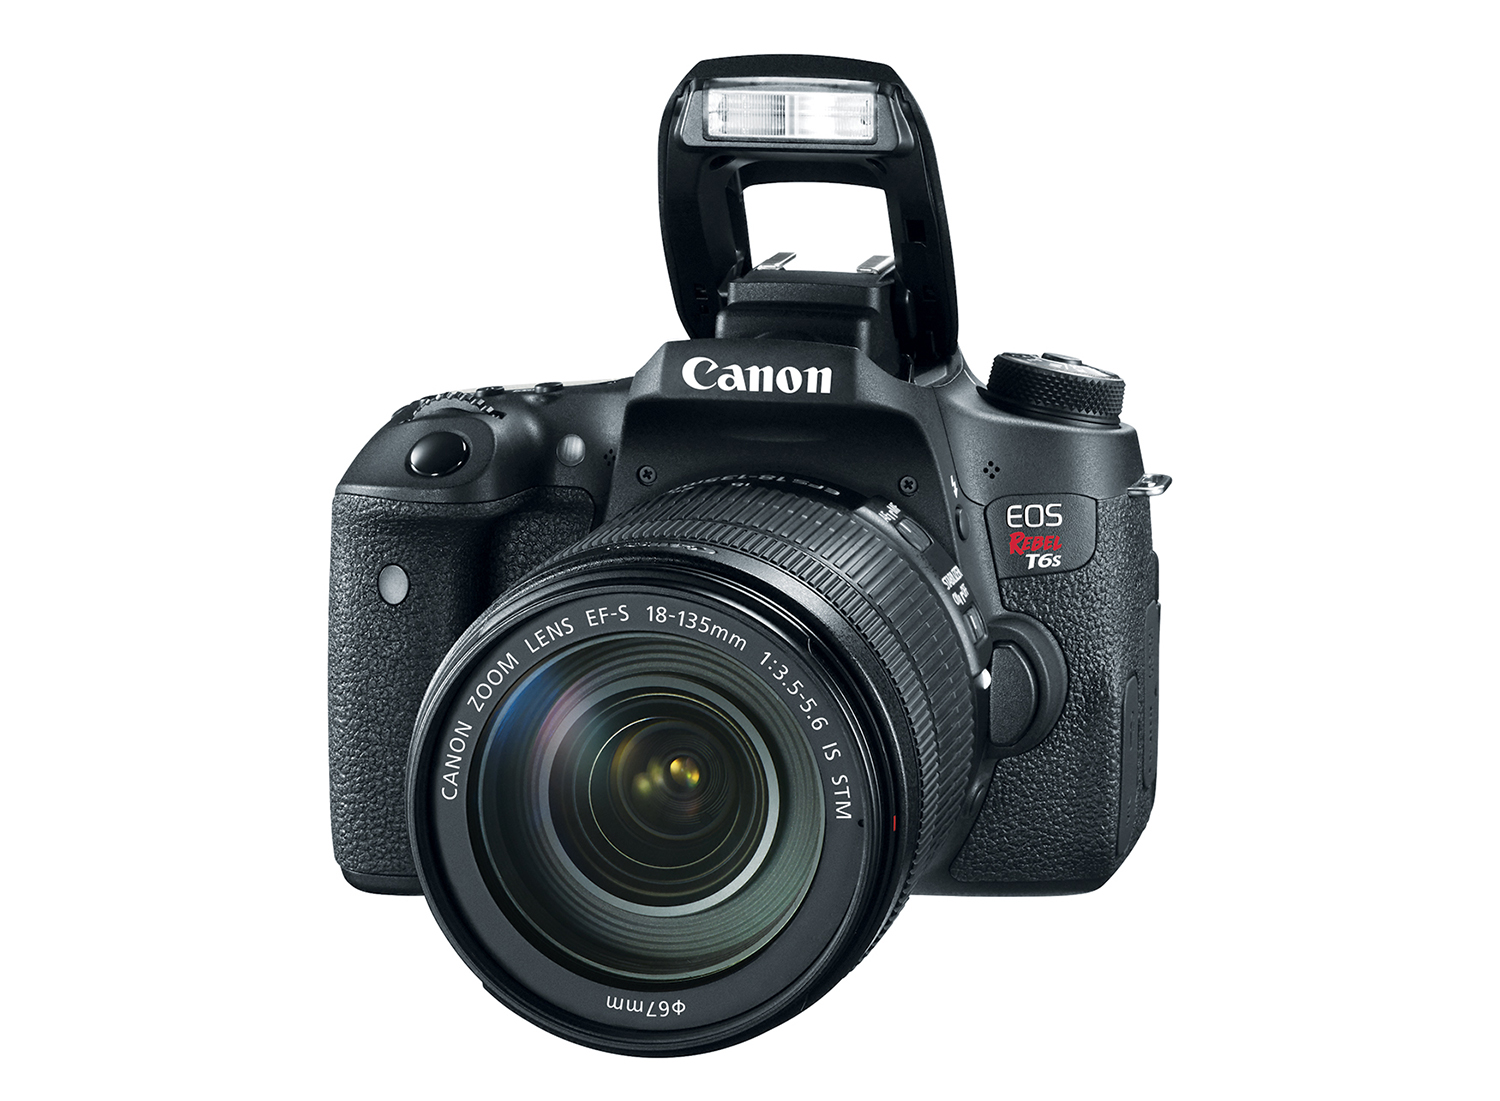 Canon T6s with 18-135/3.5-5.6 IS STM